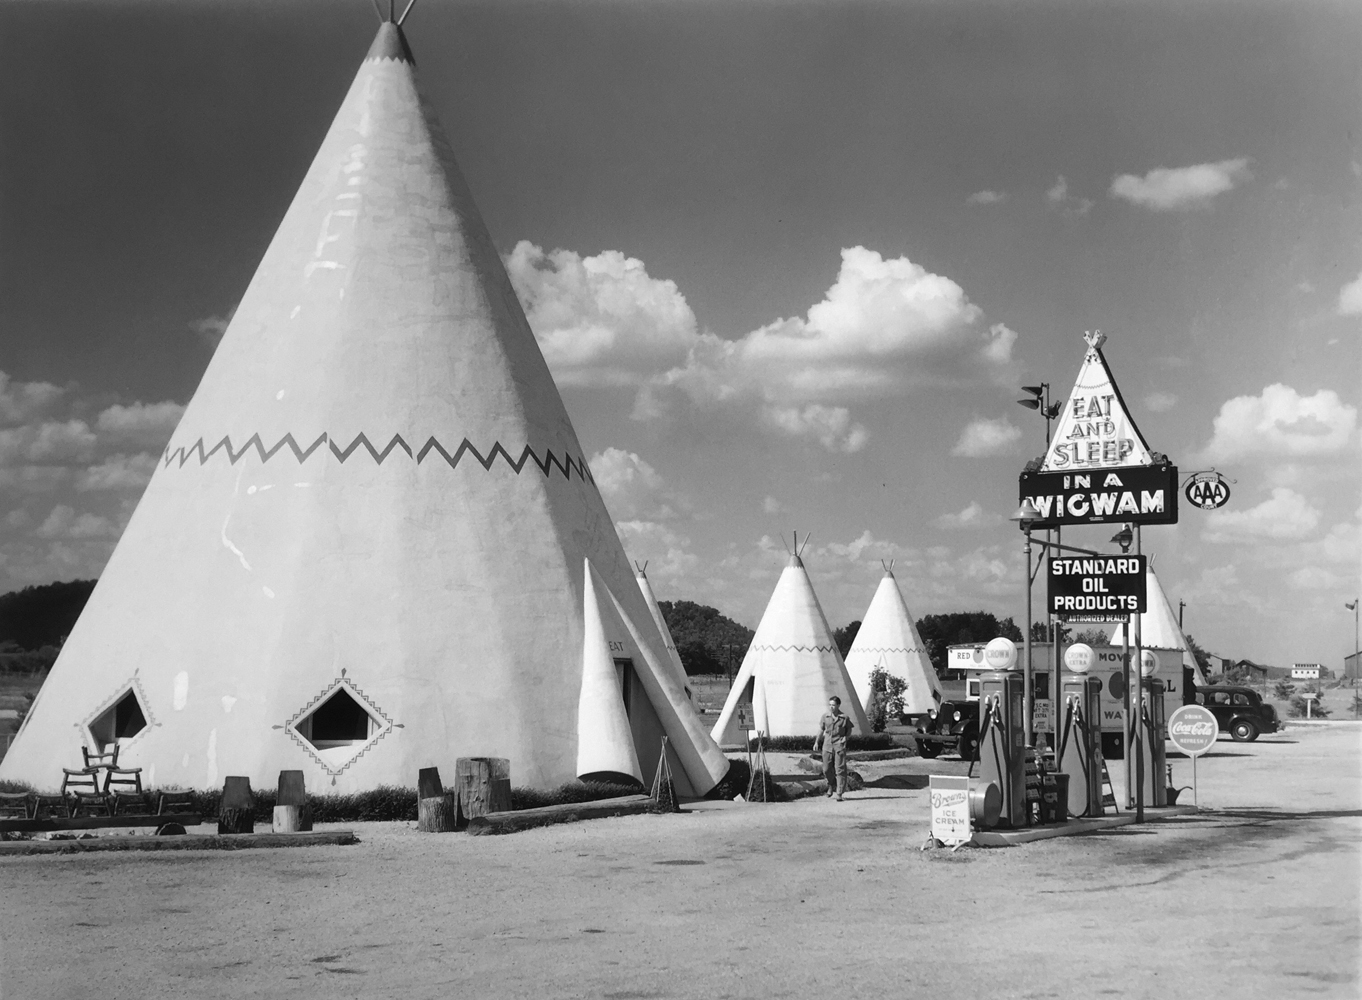 Marion Post Wolcott, Wigwam Motel, Bardstown, Kentucky, 1940, gelatin silver print, 11 x 14 inches